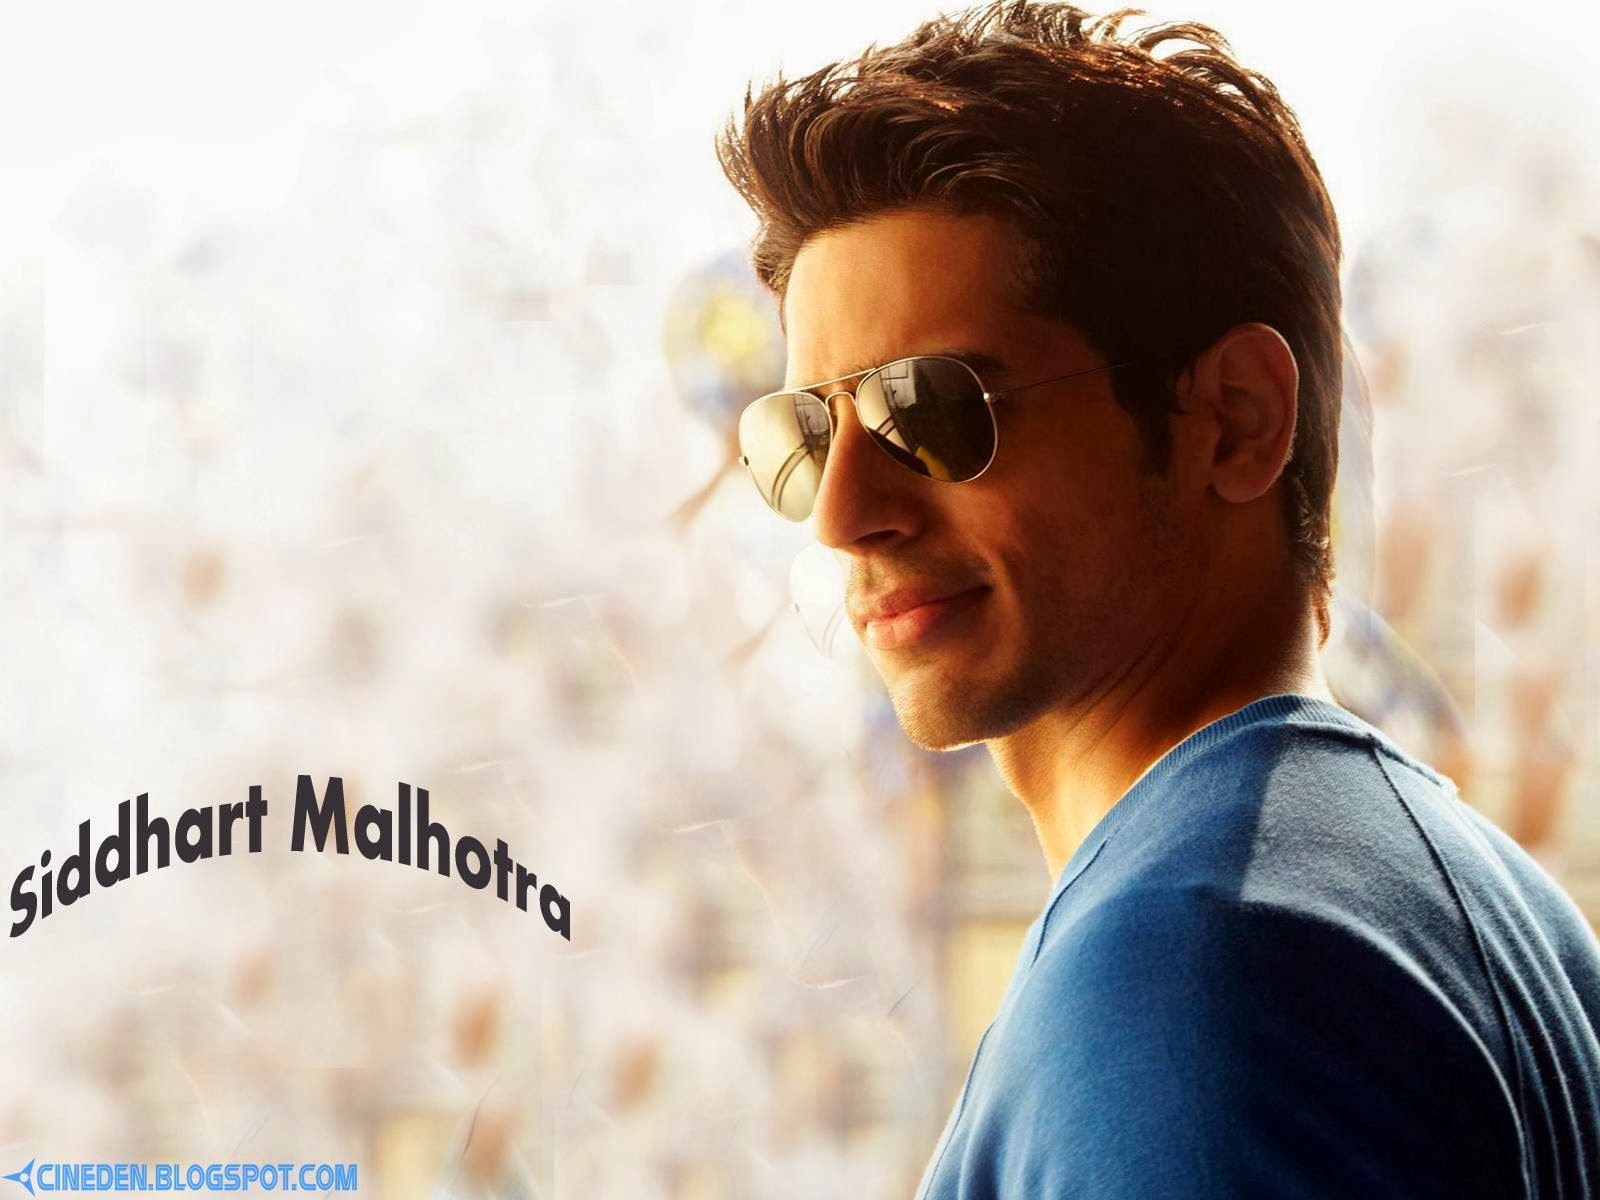 Sidharth Malhotra excited to work with Shraddha - CineDen